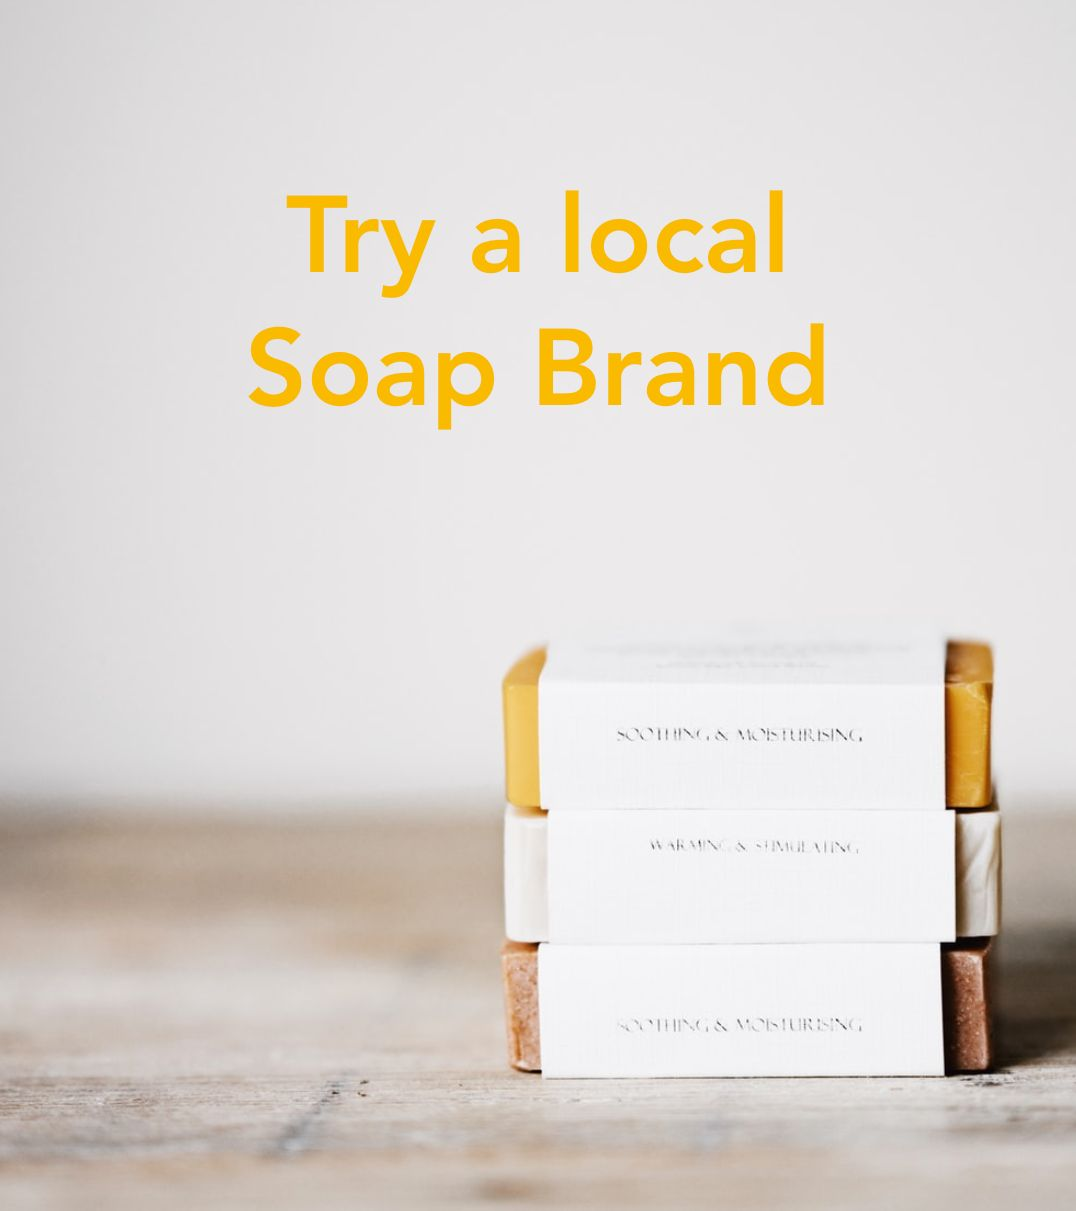 Try a local soap brand - Start localising your shopping by trying a locally made soap